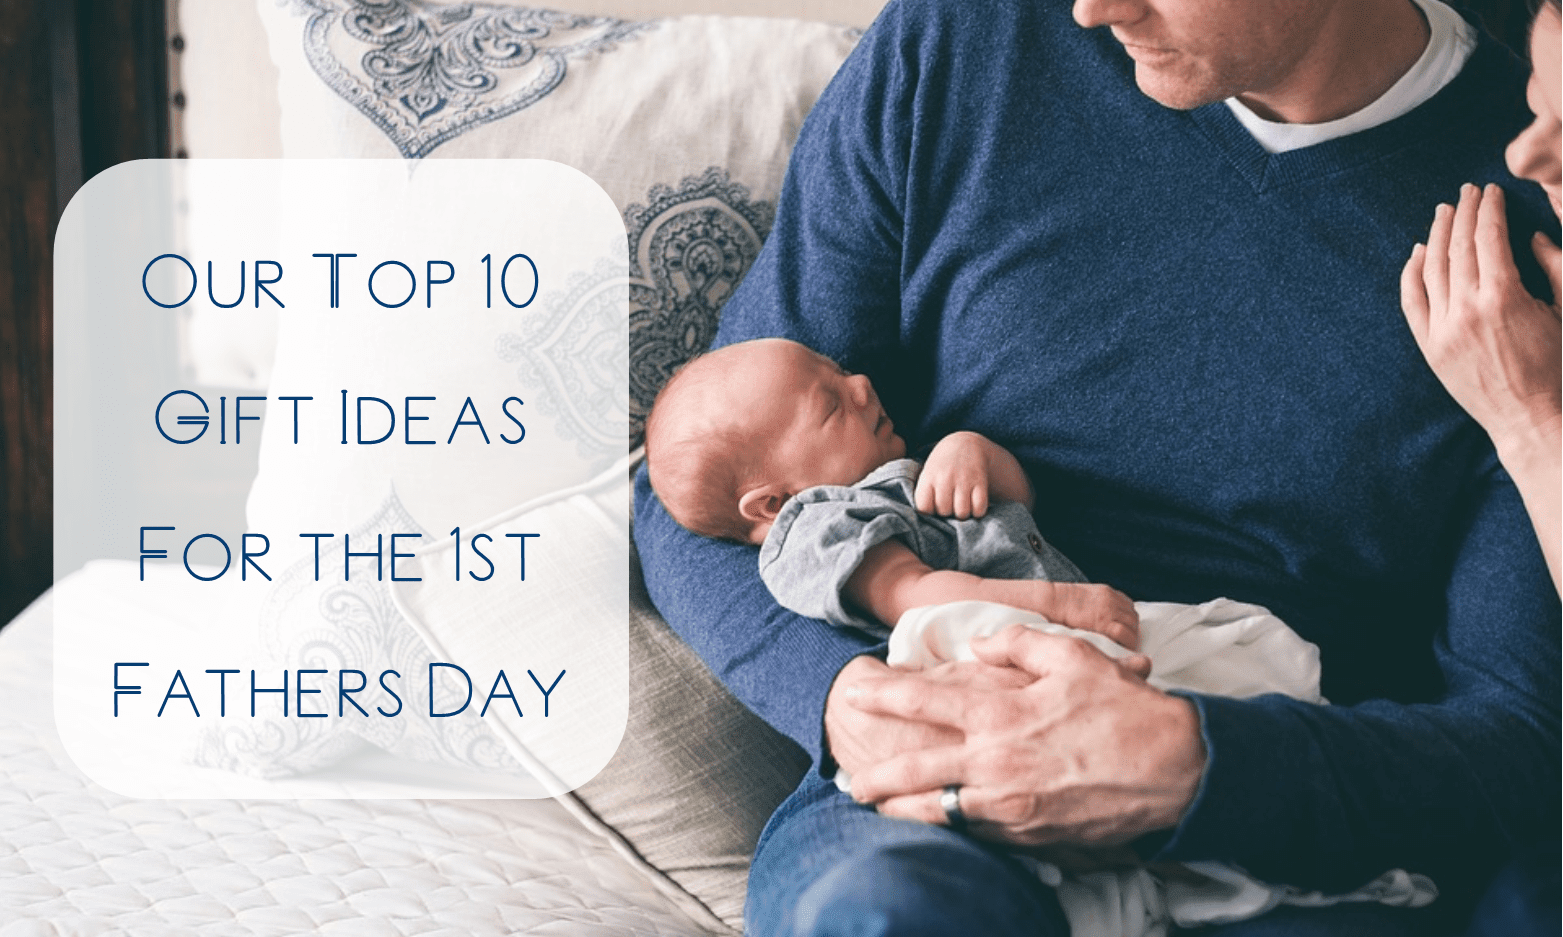 Our Top 10 Gift Ideas for the 1st Father's Day